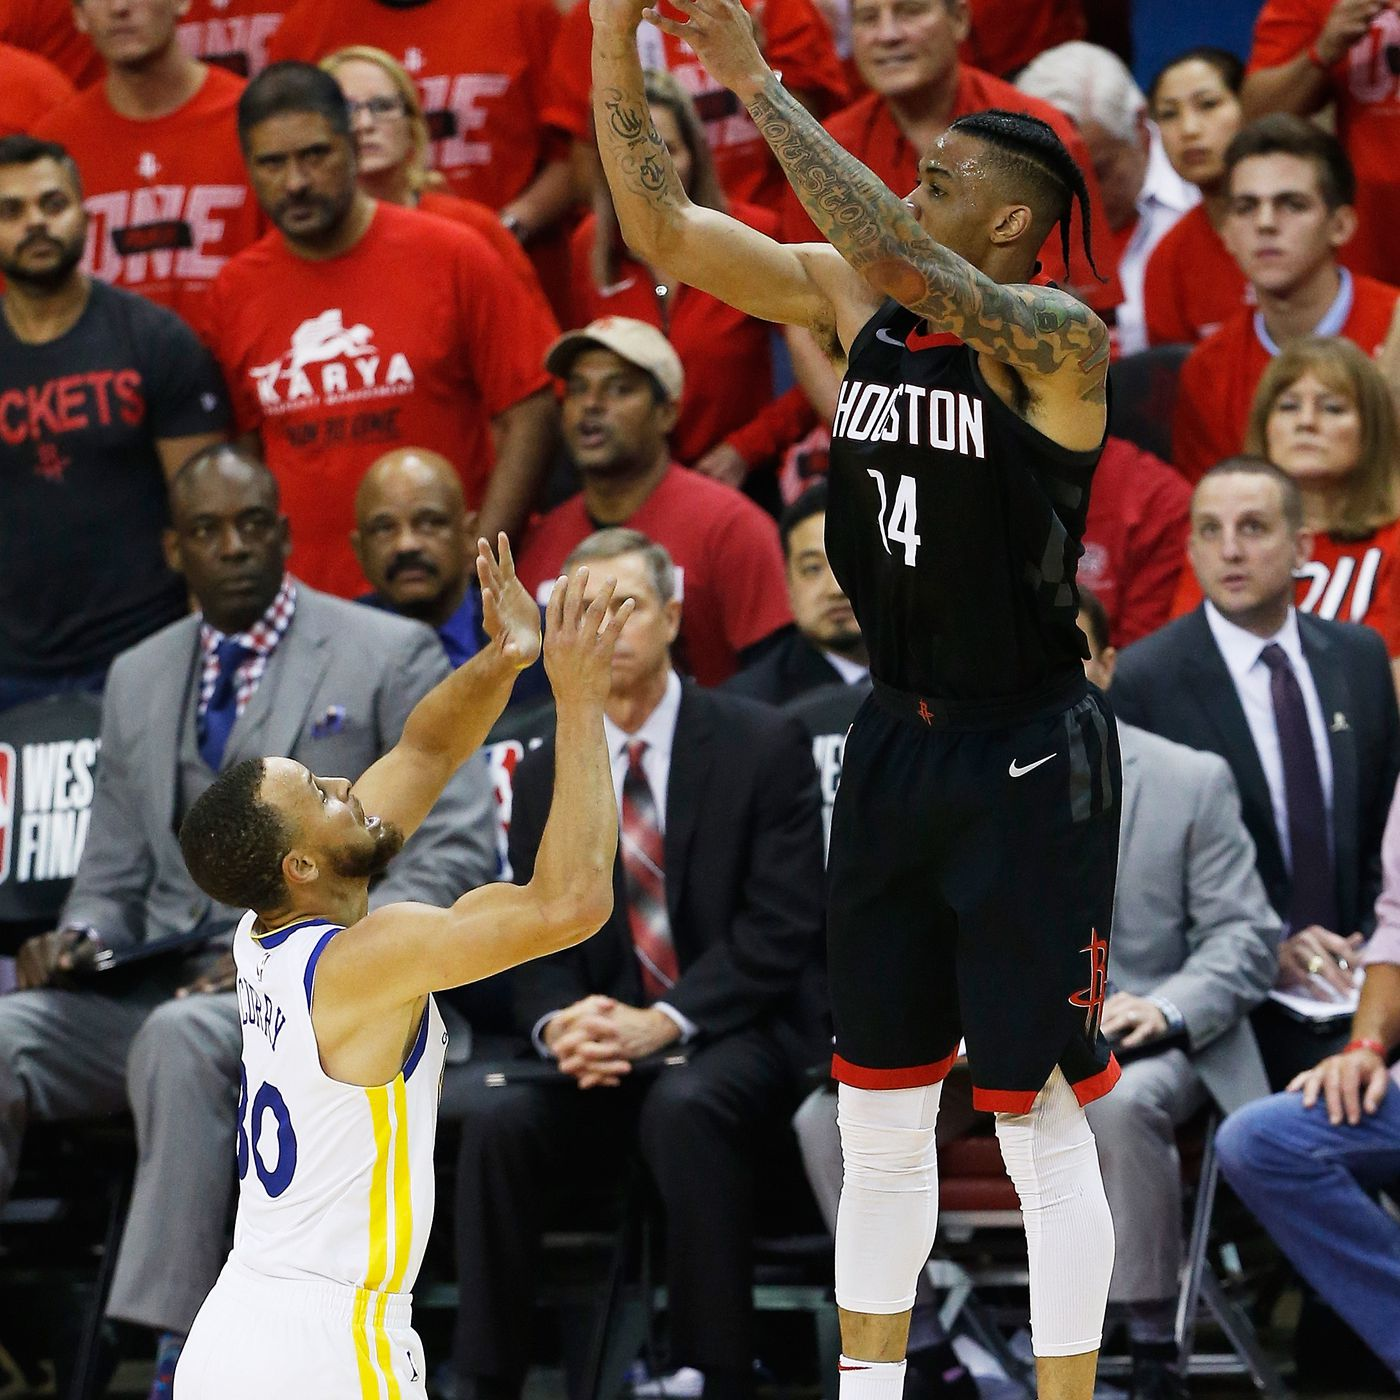 9bbcac406d8a Houston Rockets  only hope against Golden State Warriors was to rely on 3s  - SBNation.com